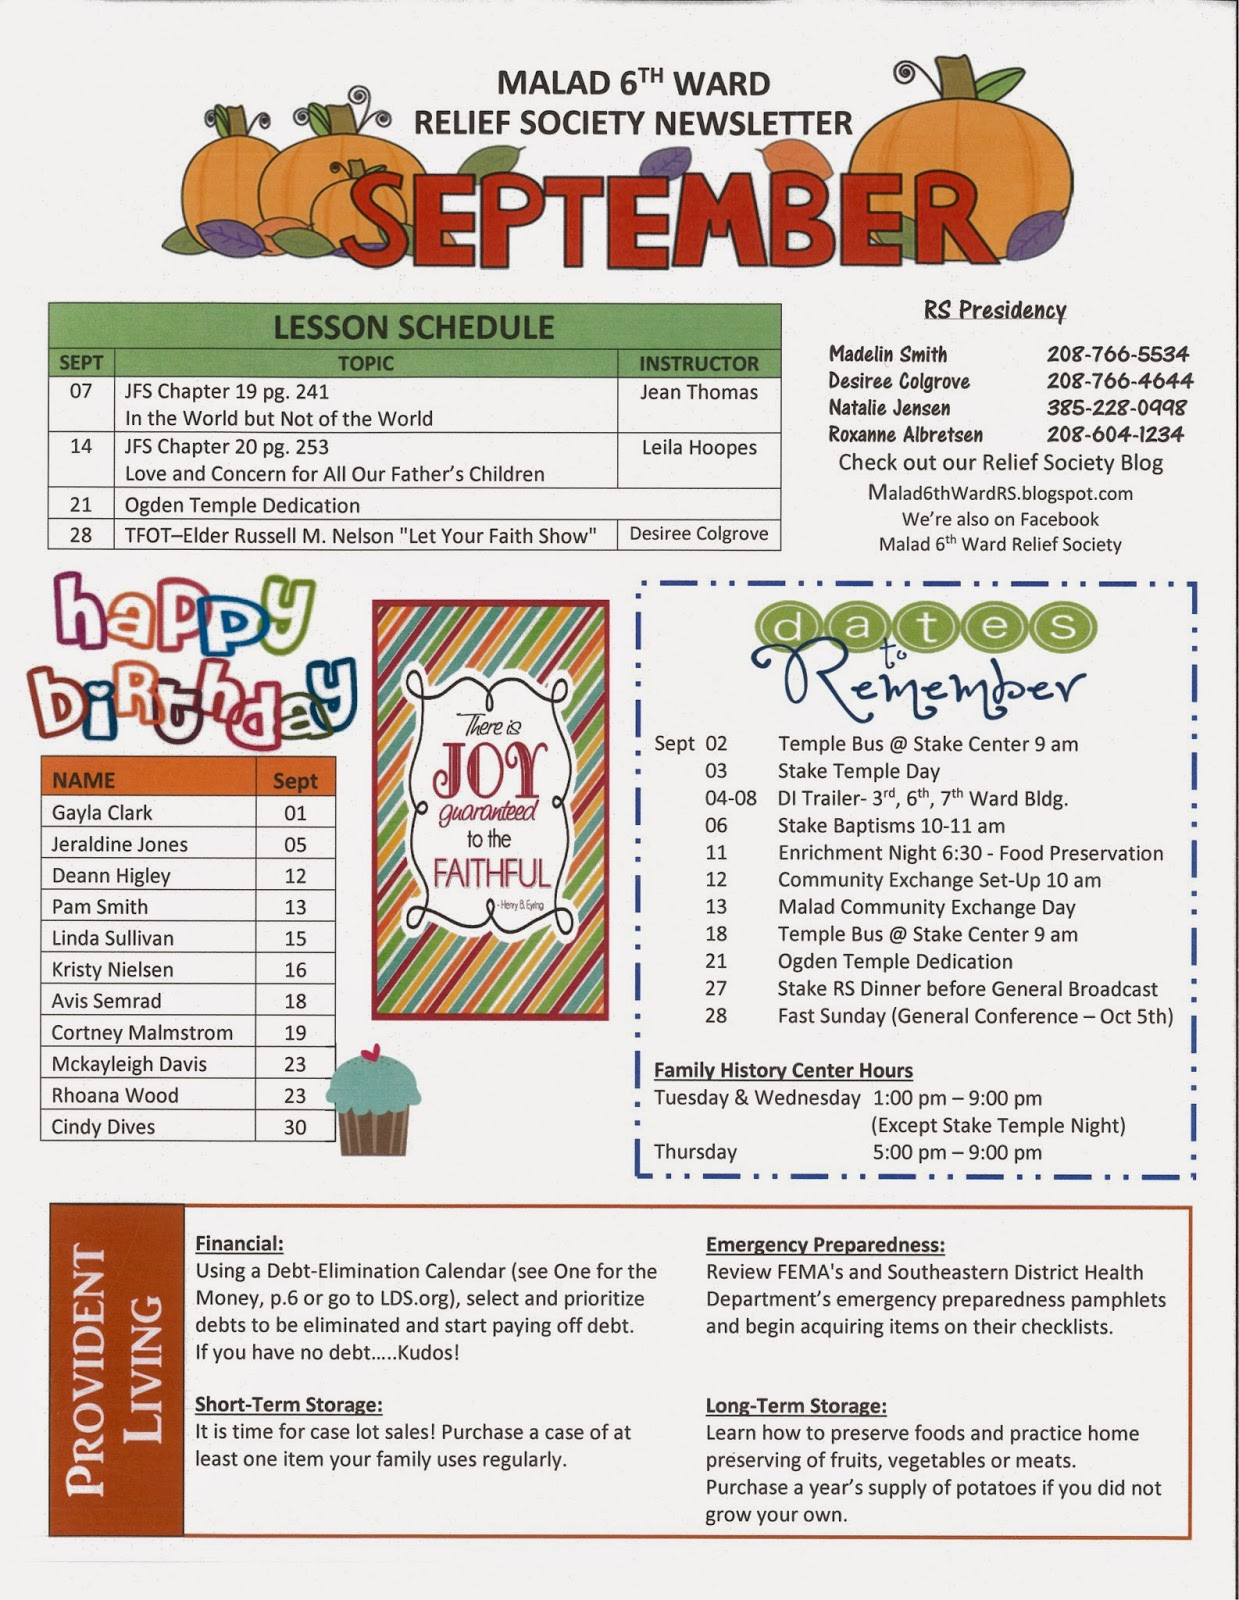 New Malad 6th Ward Relief Society Blog: SEPTEMBER NEWSLETTER AND  NF83